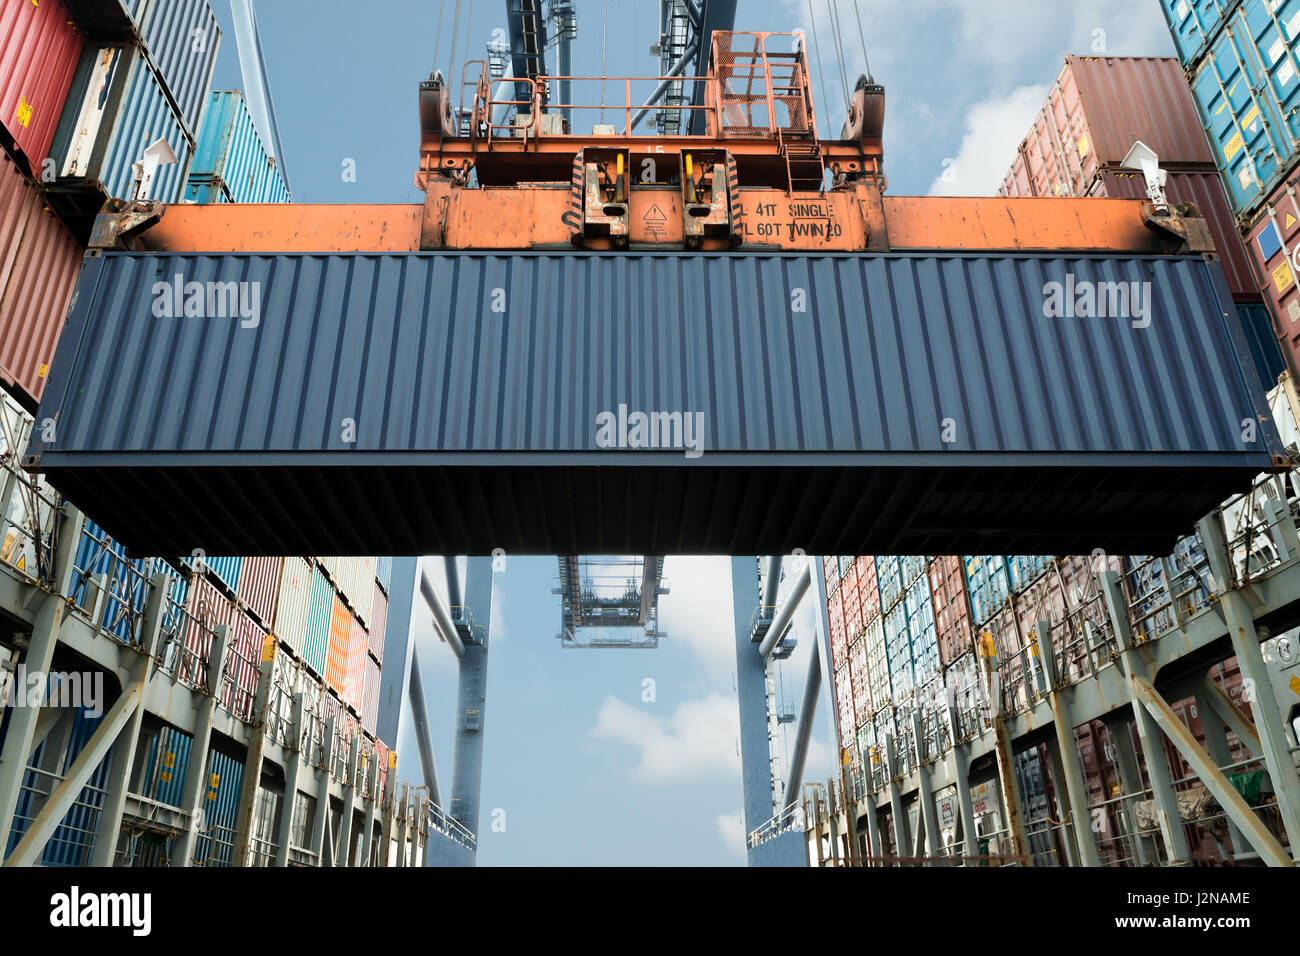 Shore crane loading export containers in freight ship use for import export and logistics background. - Stock Image